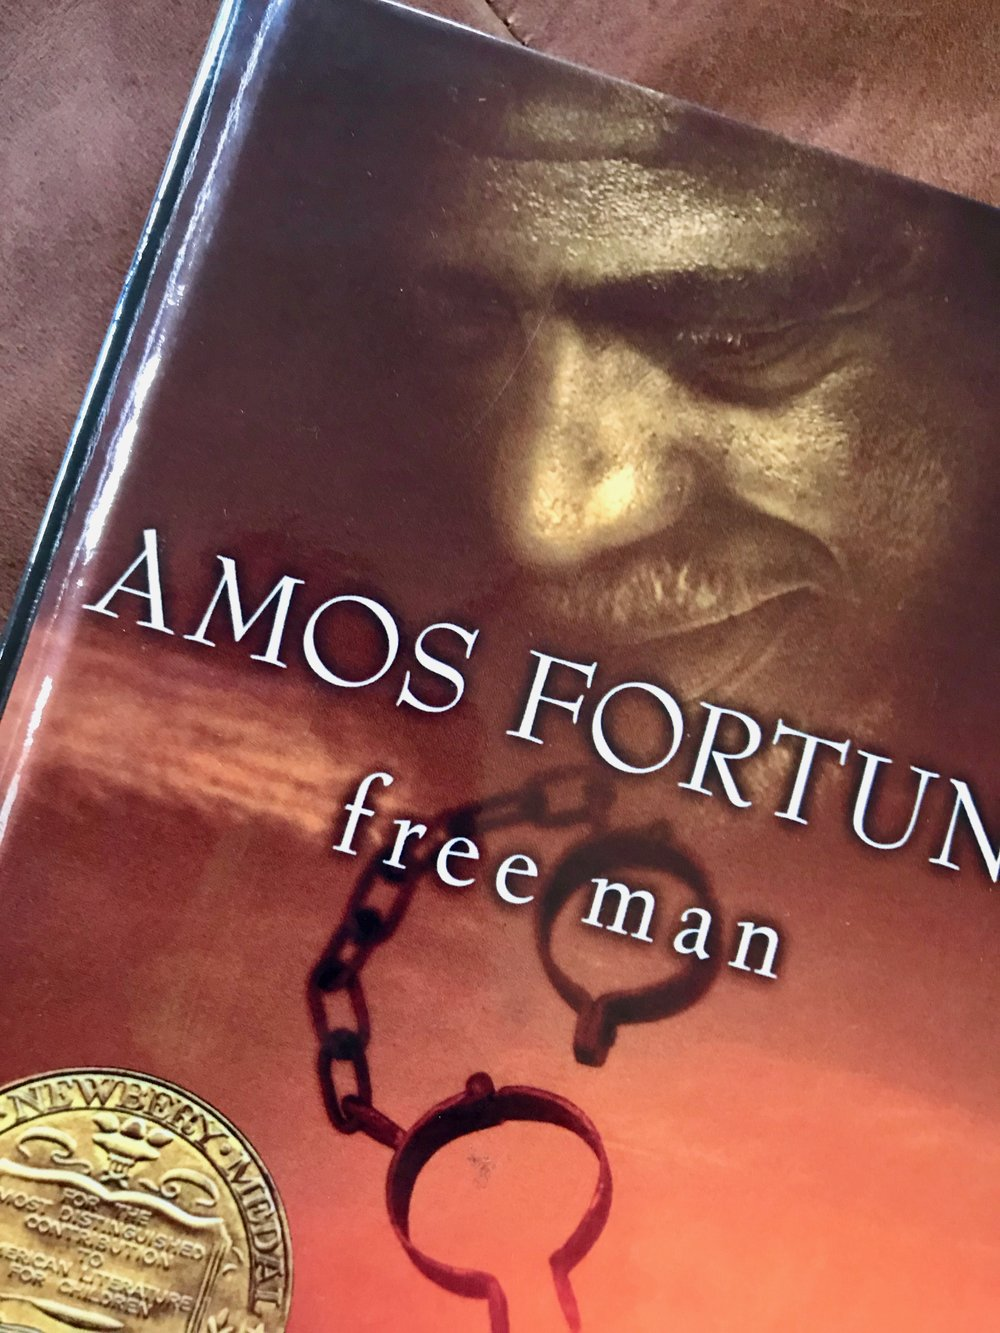 Amos-Fortune-Book.jpeg